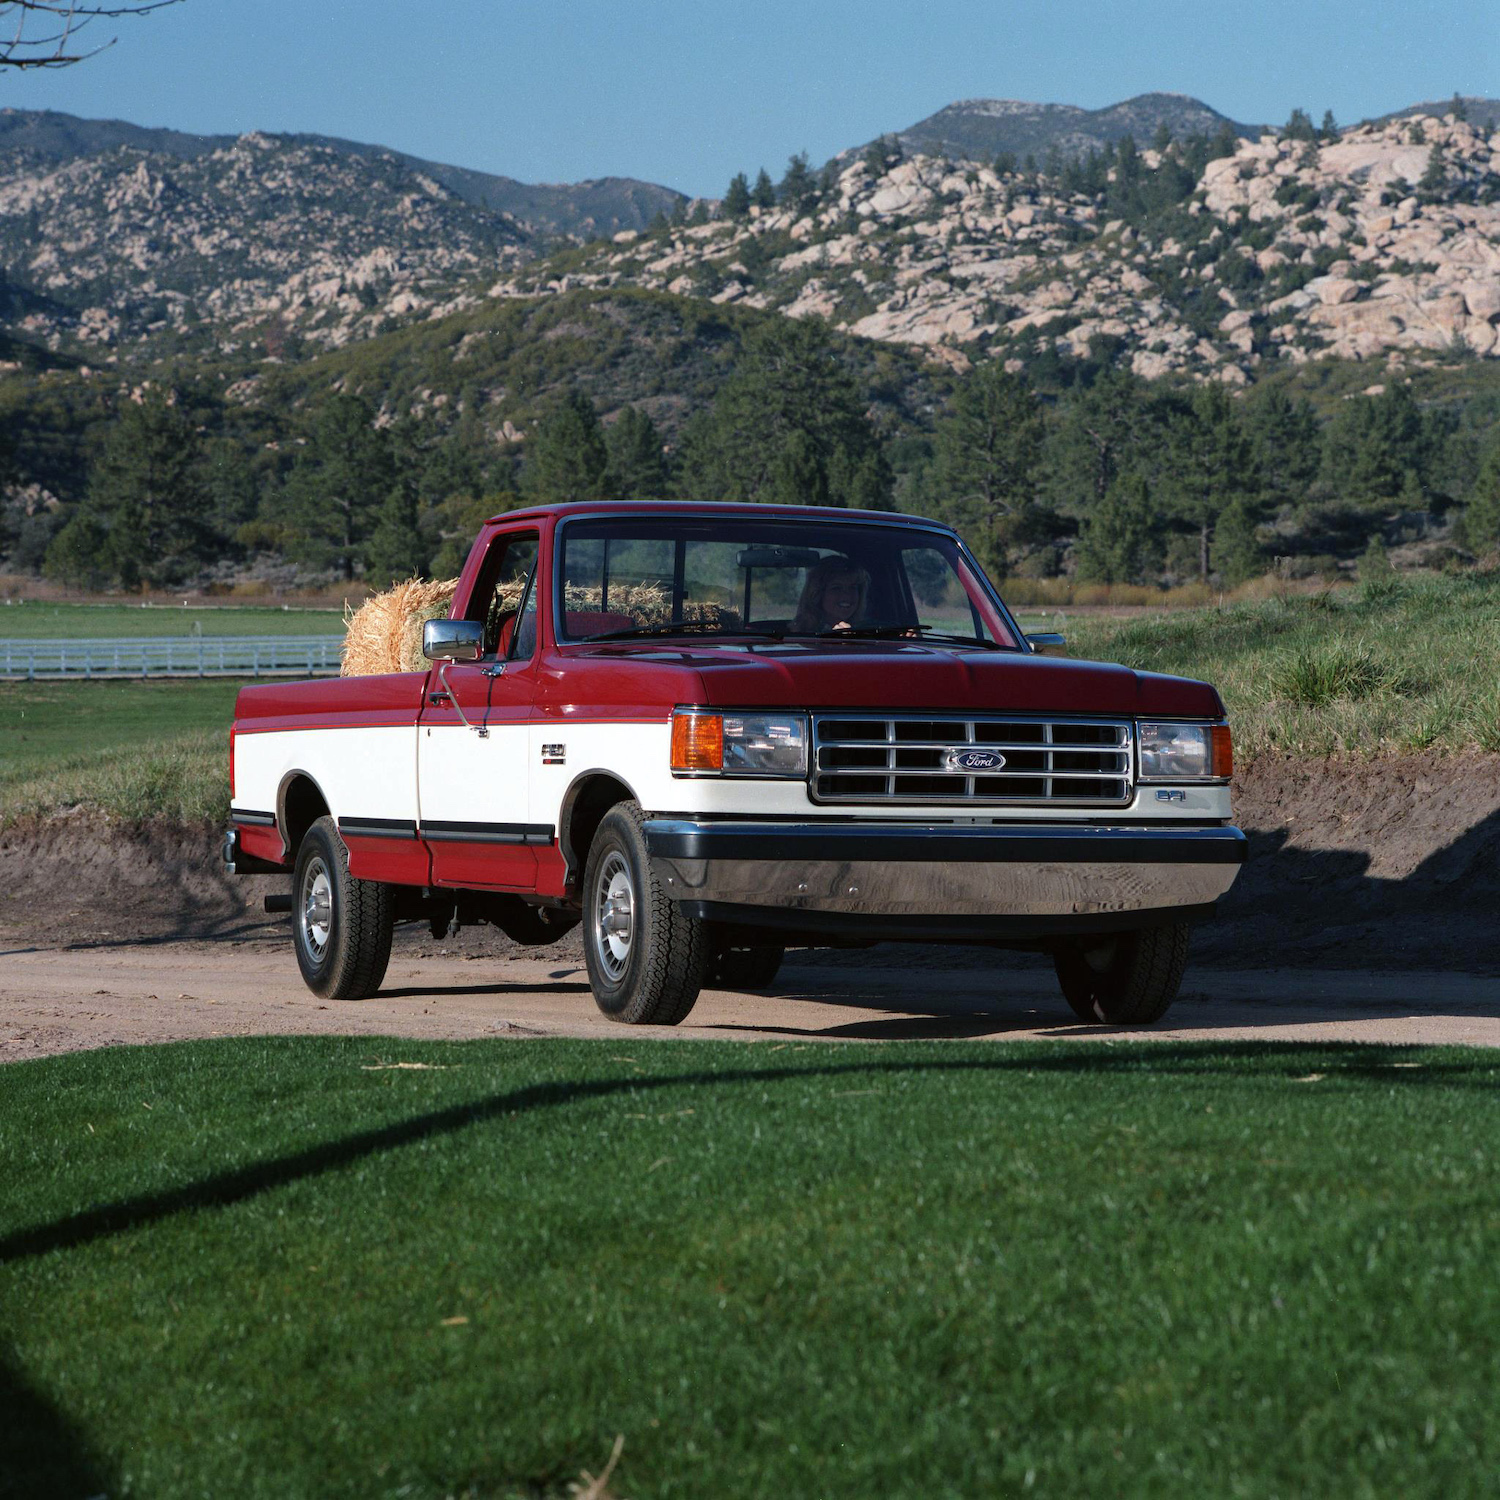 1988 Ford F-150 Regular Cab